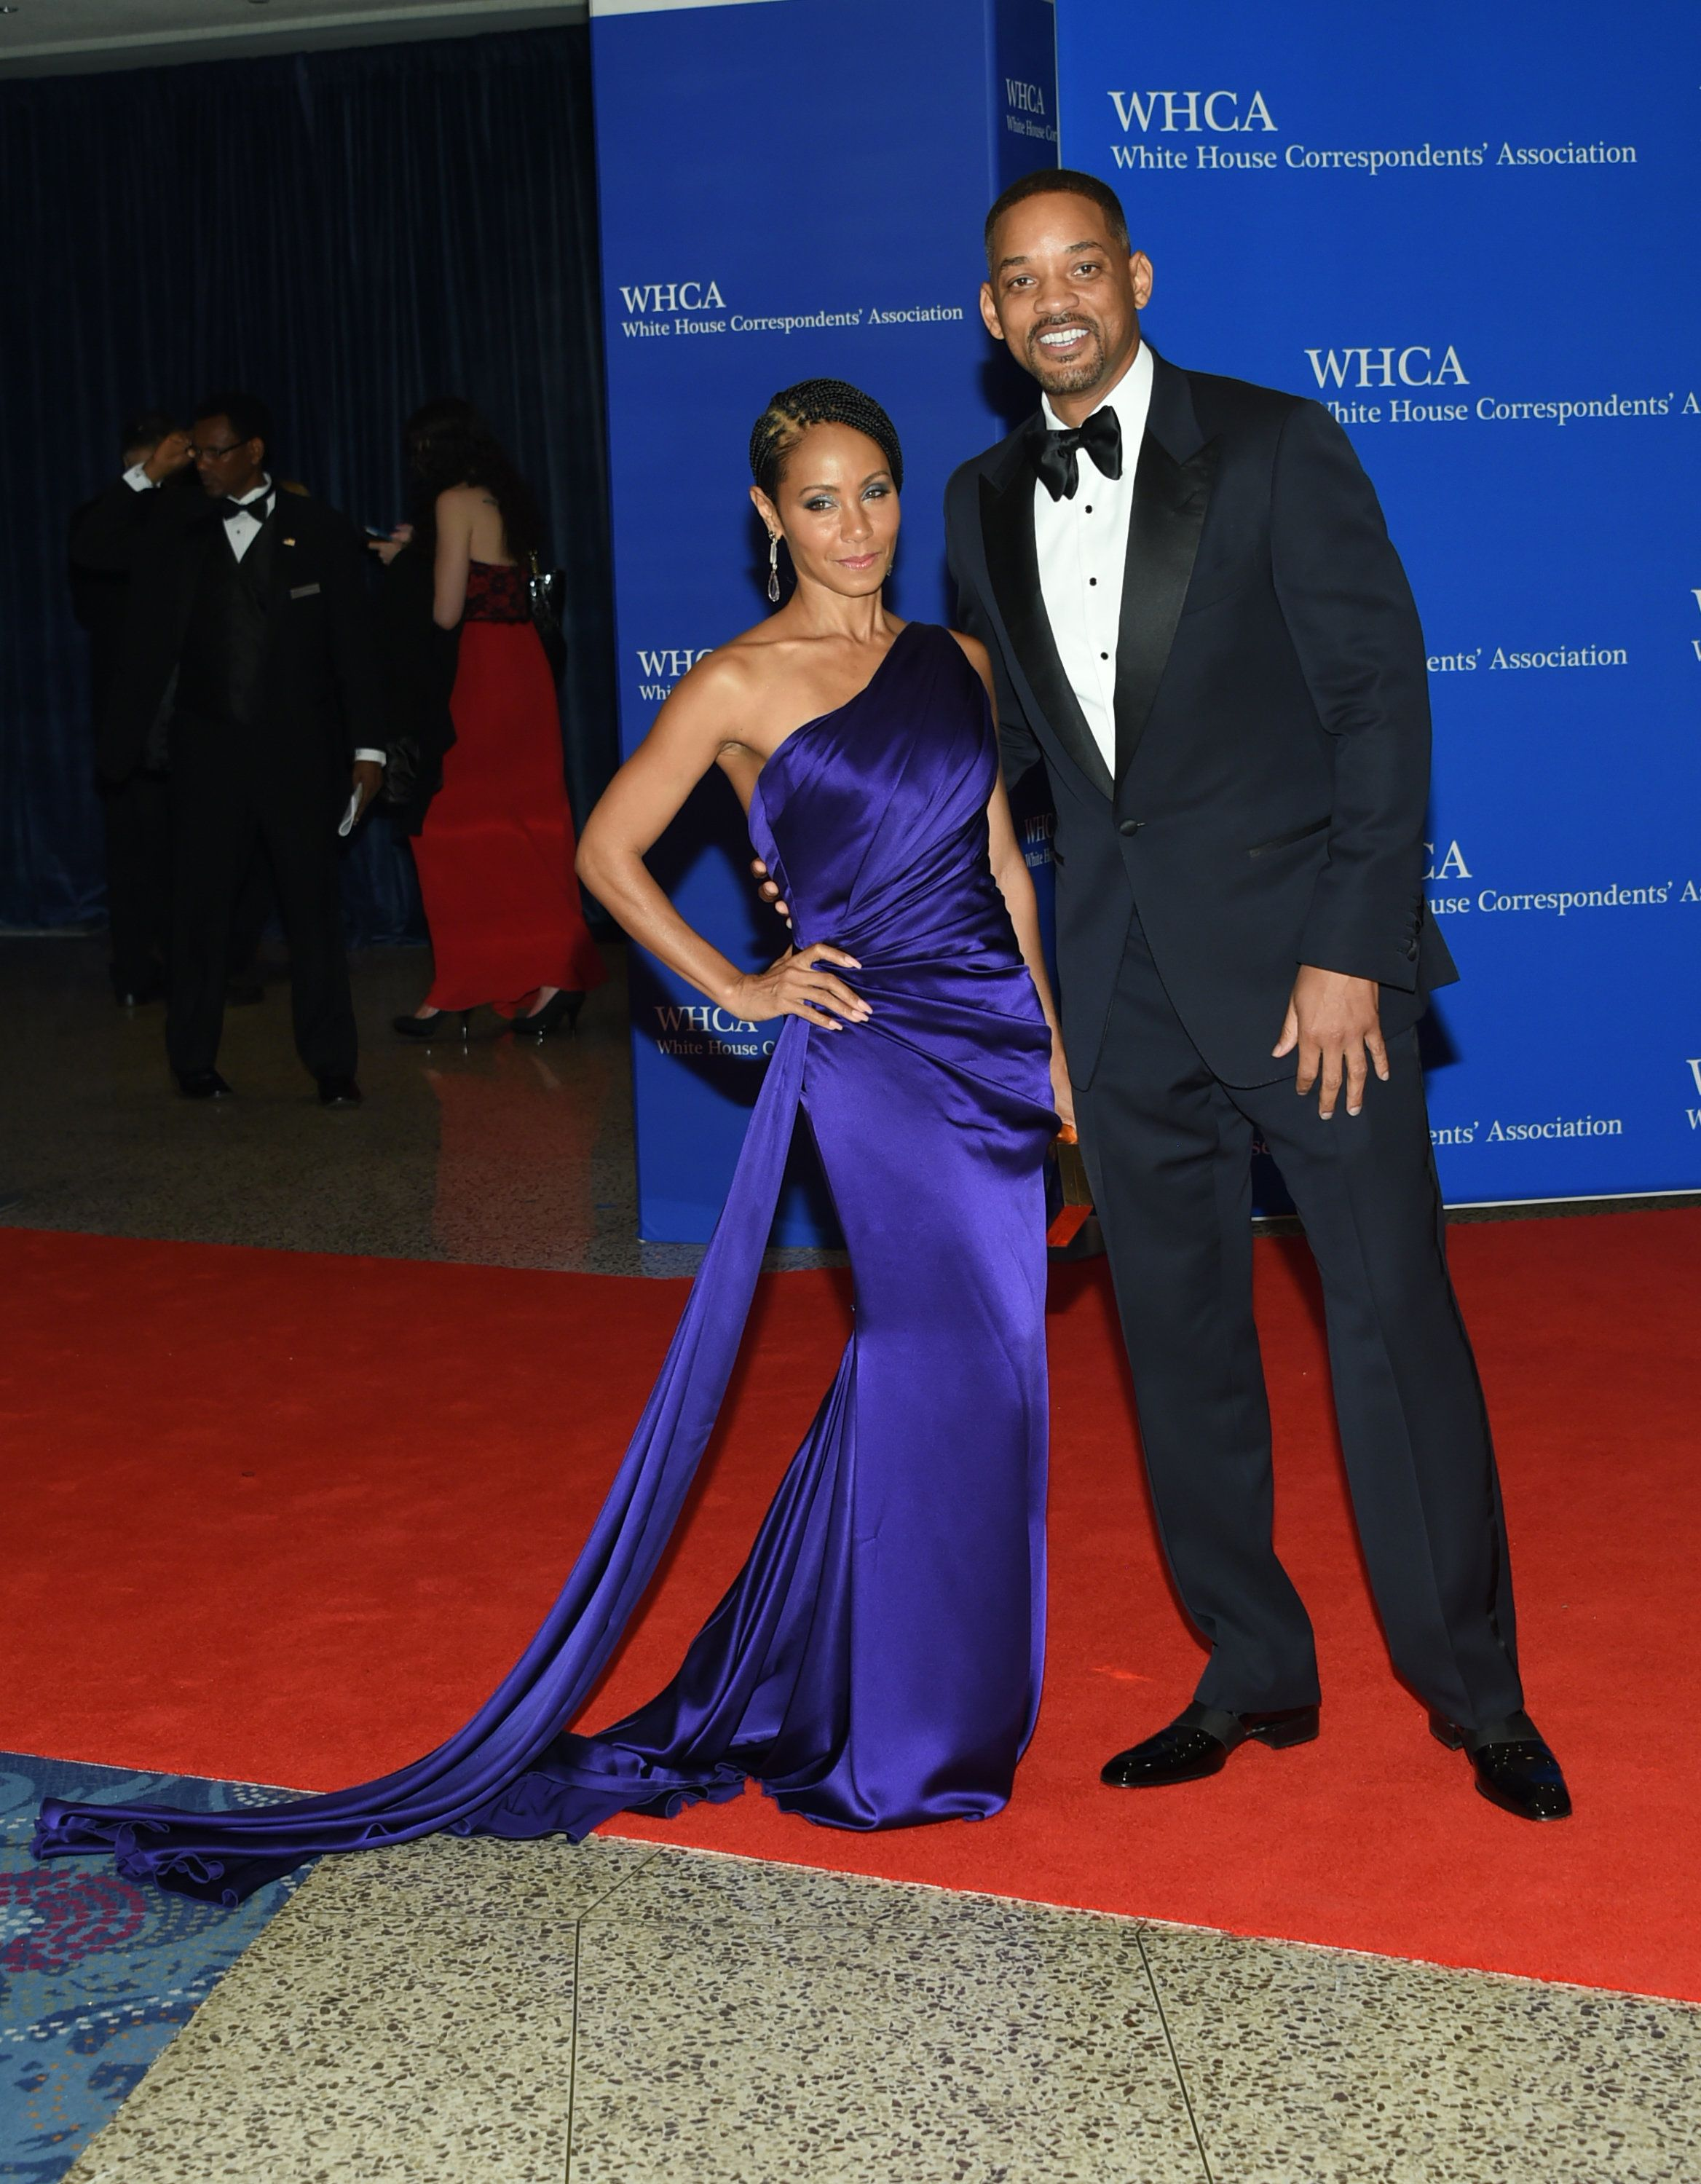 Jada Pinkett Smith, left, and Will Smith arrive at the White House Correspondents' Association Dinner at the Washington Hilton Hotel on Saturday, April 30, 2016, in Washington. (Photo by Evan Agostini/Invision/AP)